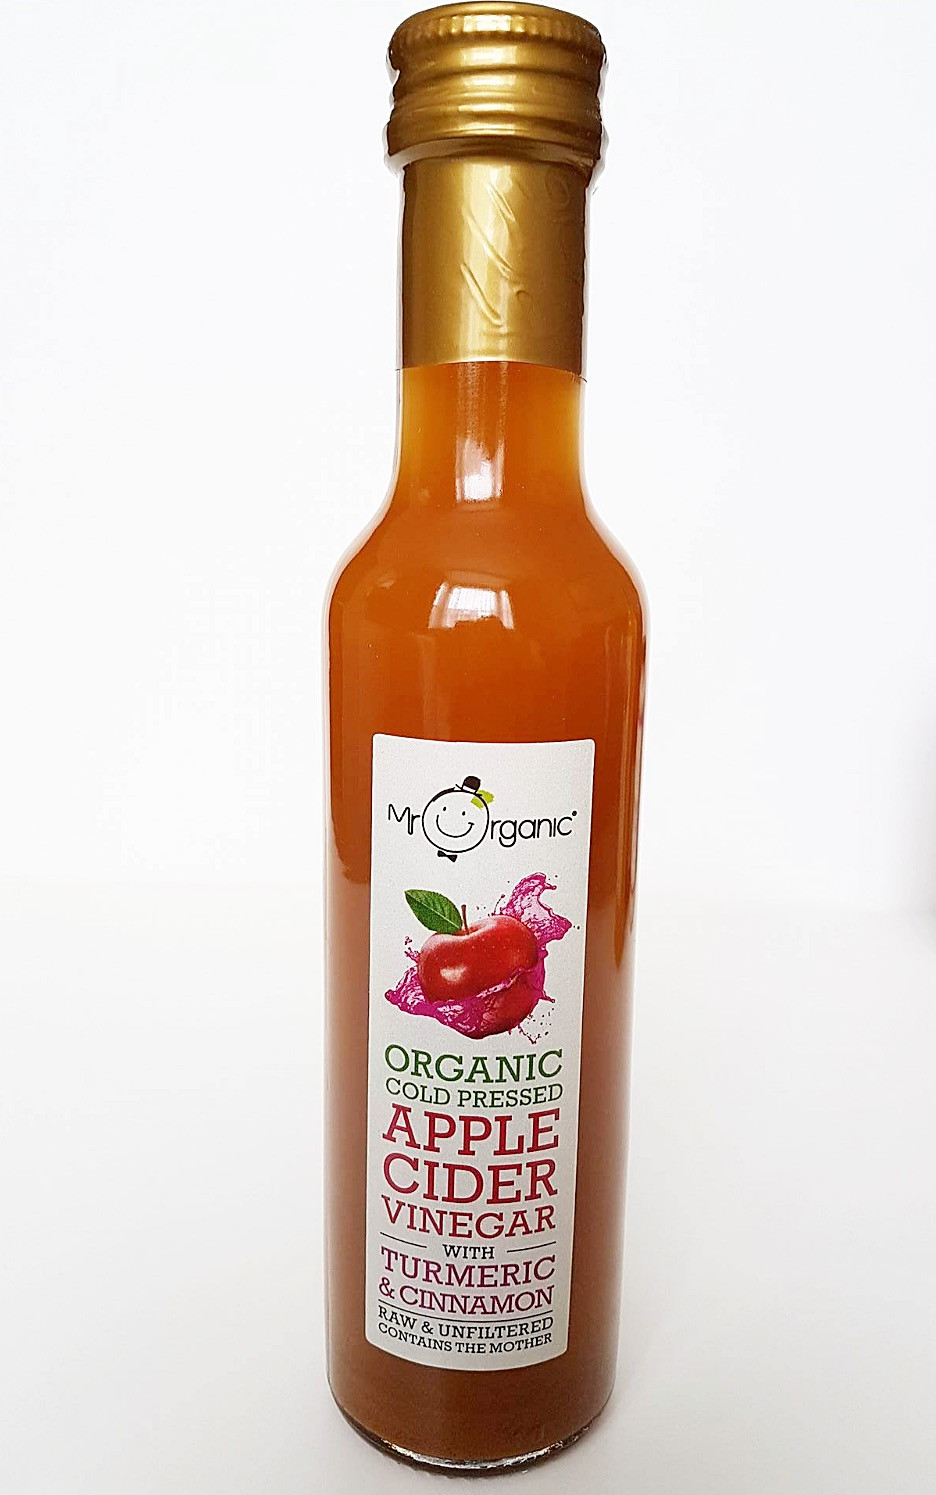 Mr Organic Apple Cider Vinegar